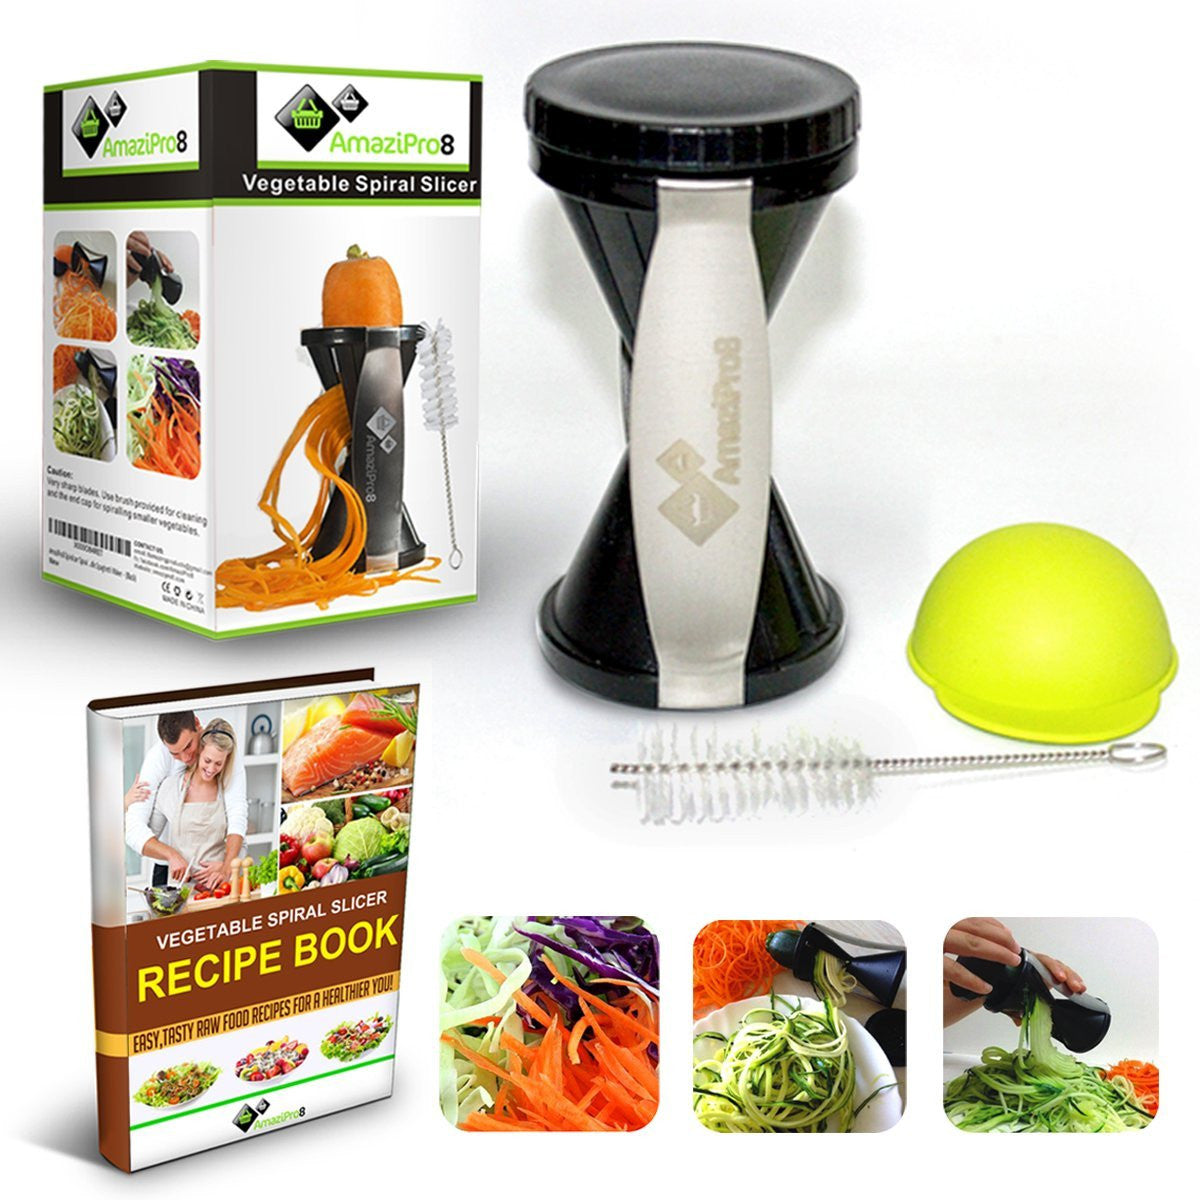 Vegetable Spiralizer Complete Bundle - Spiral Slicer comes with FREE Spiral Recipe eBook & FREE Silicone Soda Can Lid + FREE SHIPPING - AmaziPro8